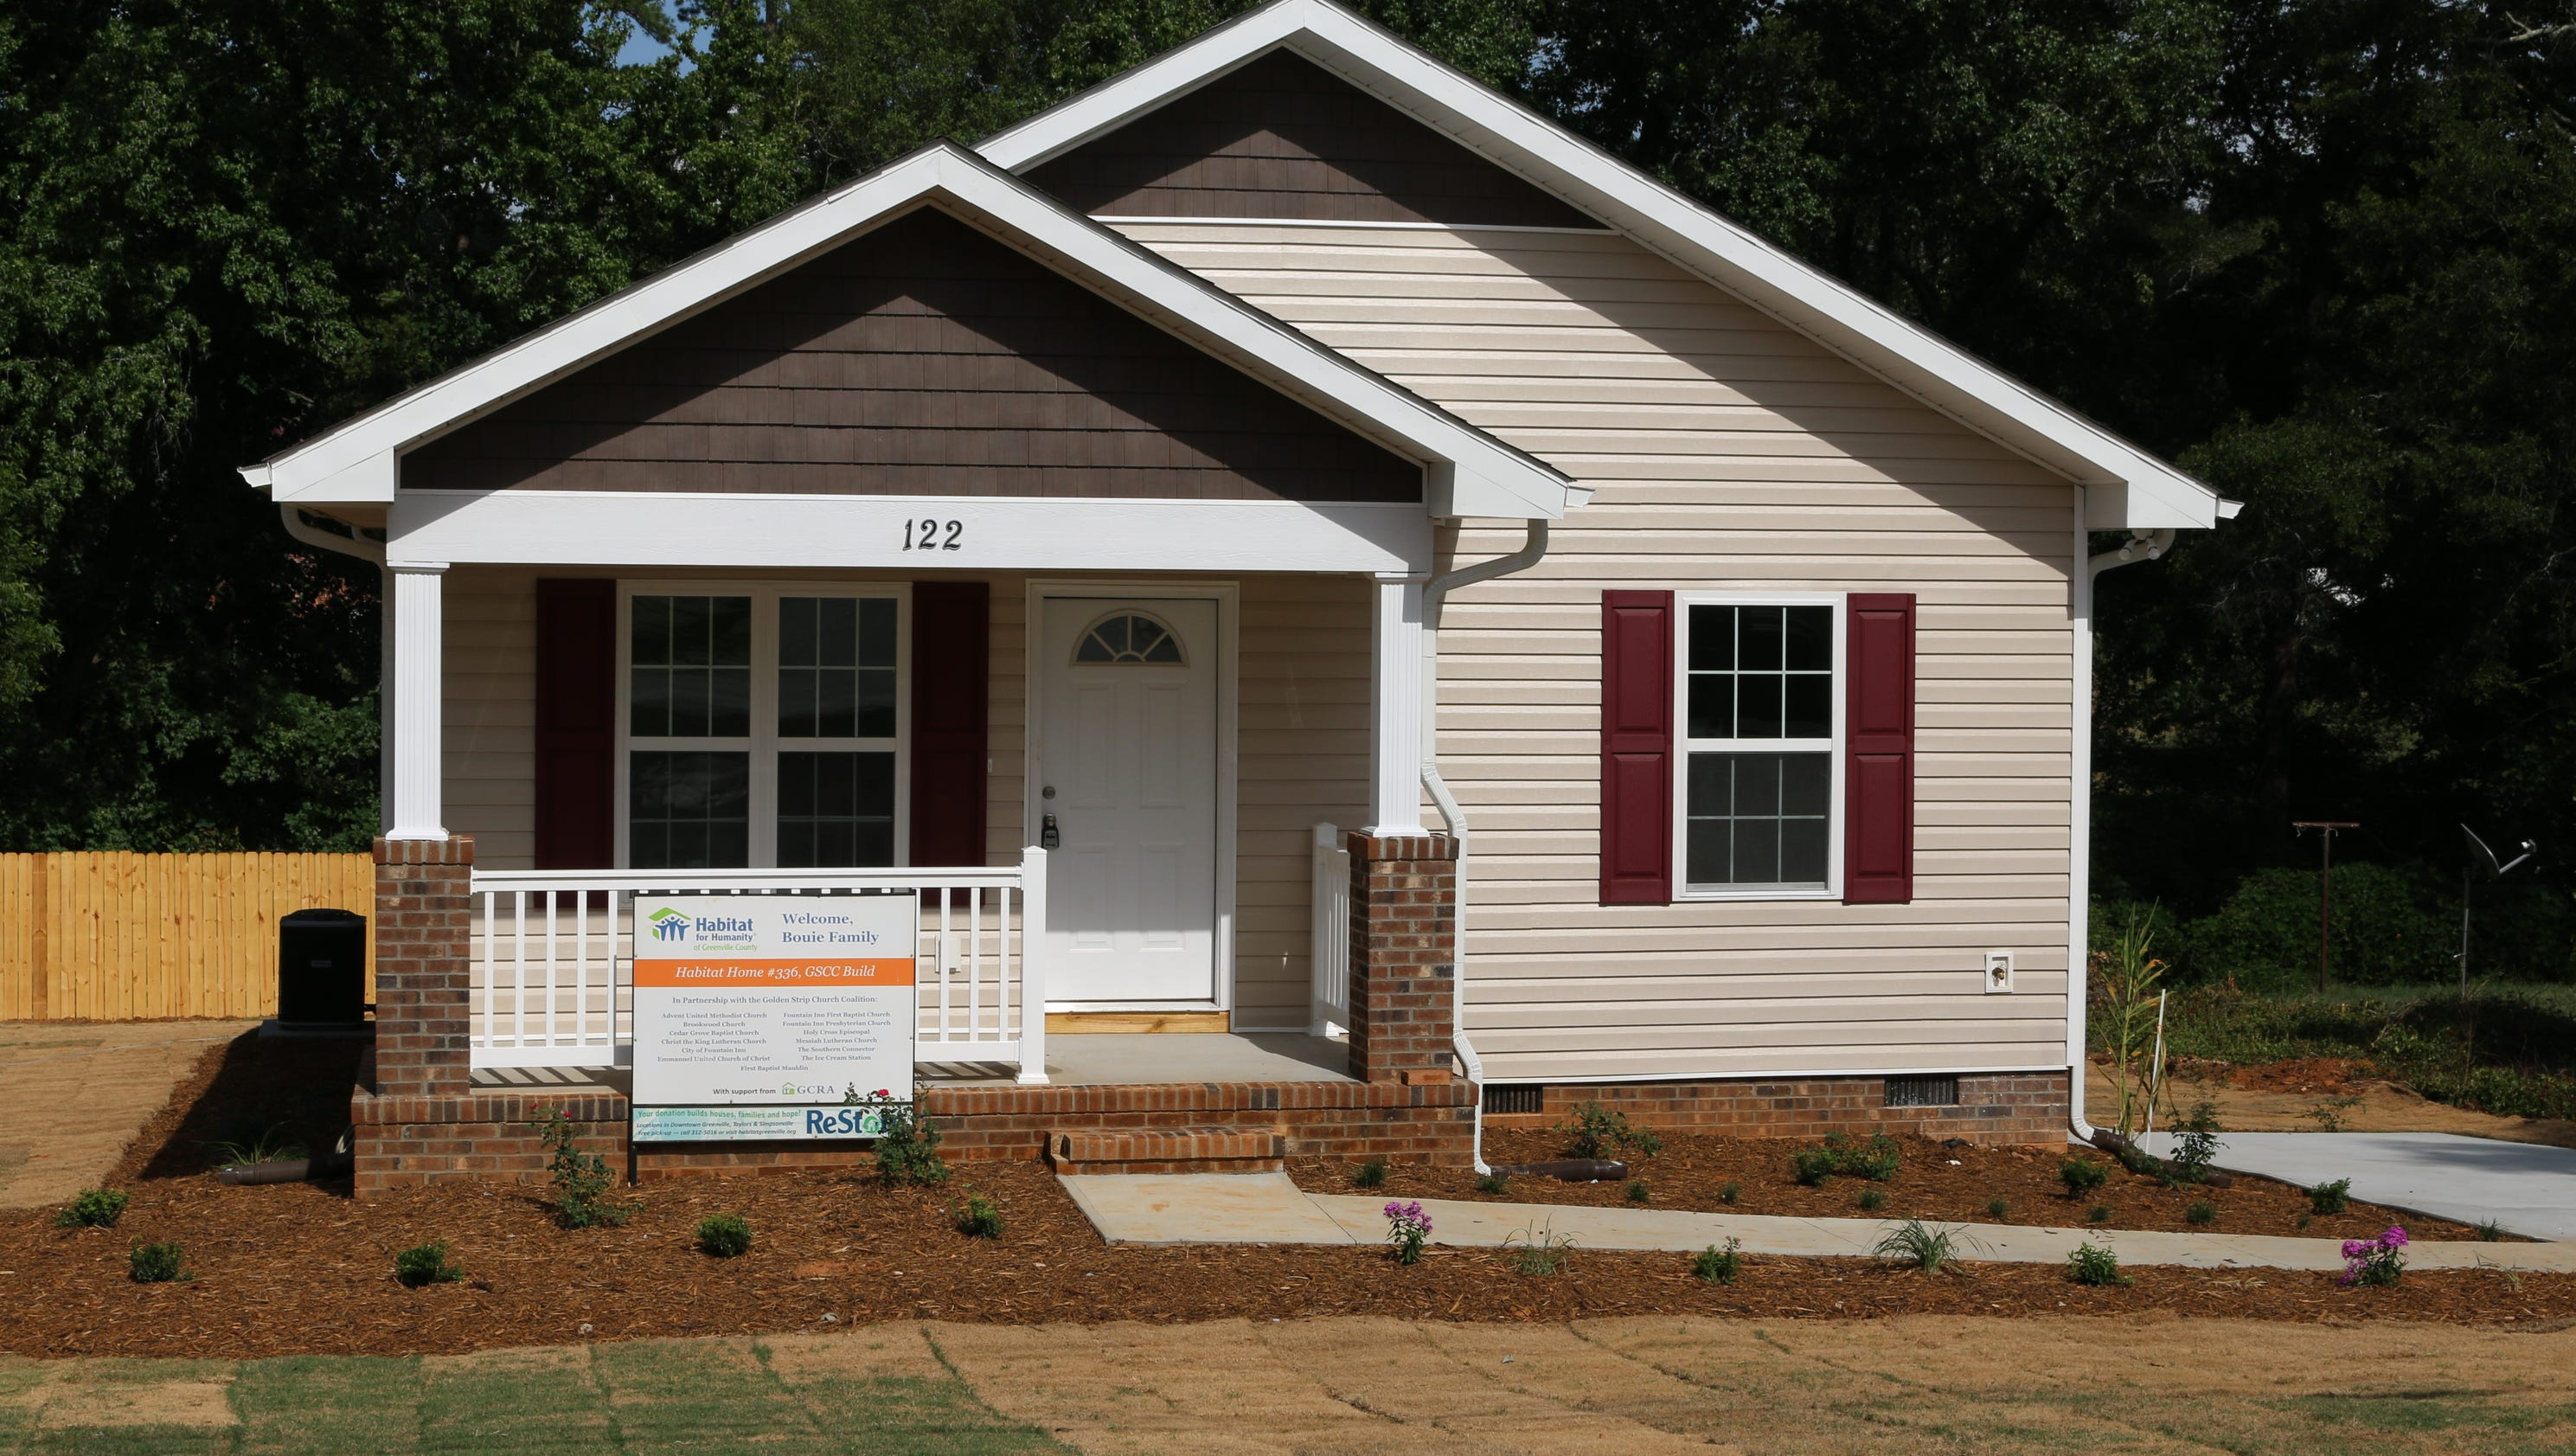 Simpsonville woman 39 s habitat for humanity home dedicated - House habitat ...